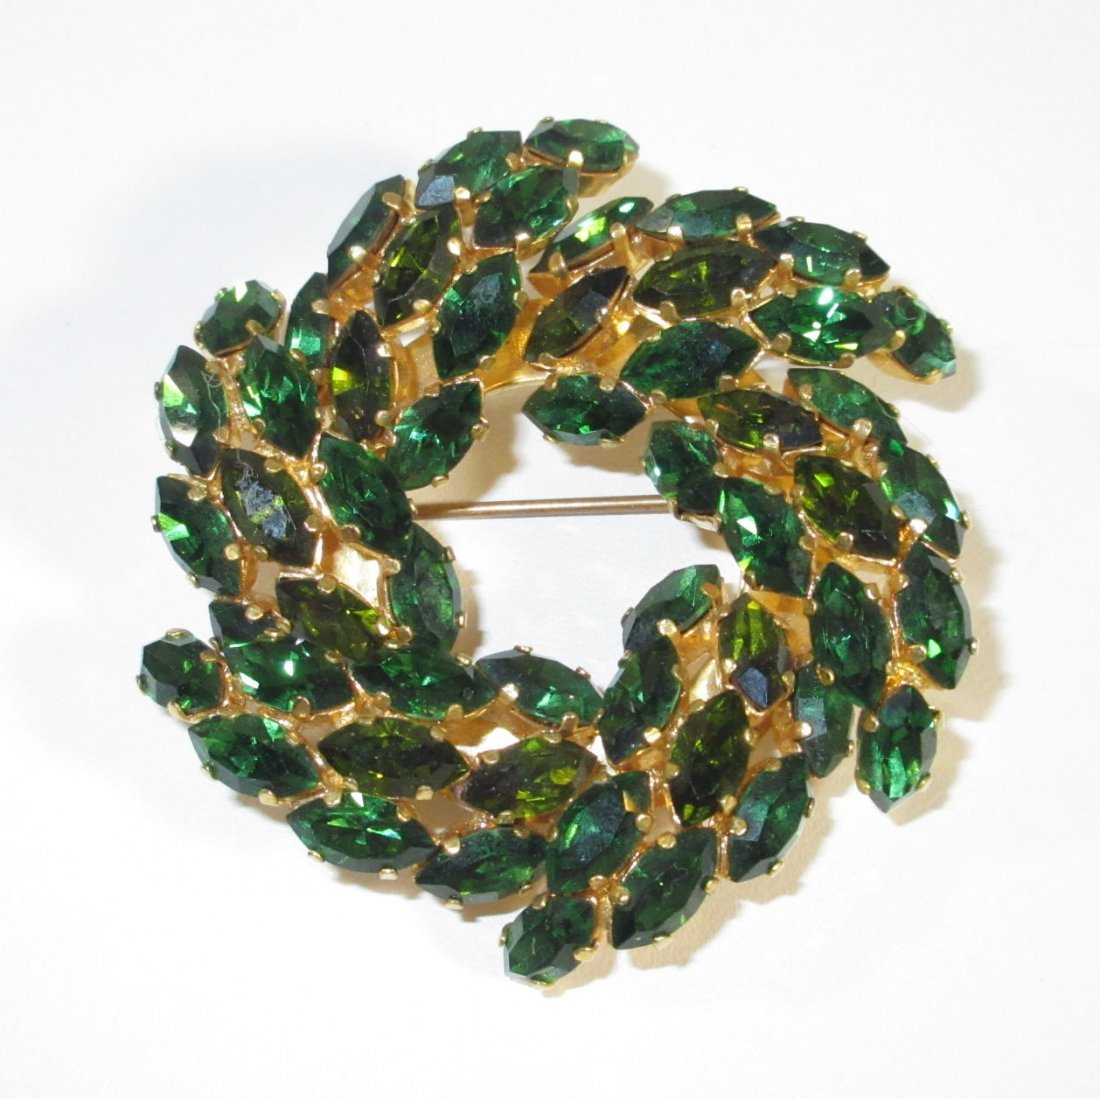 Stunning Austrian Emerald Glass Brooch - 2